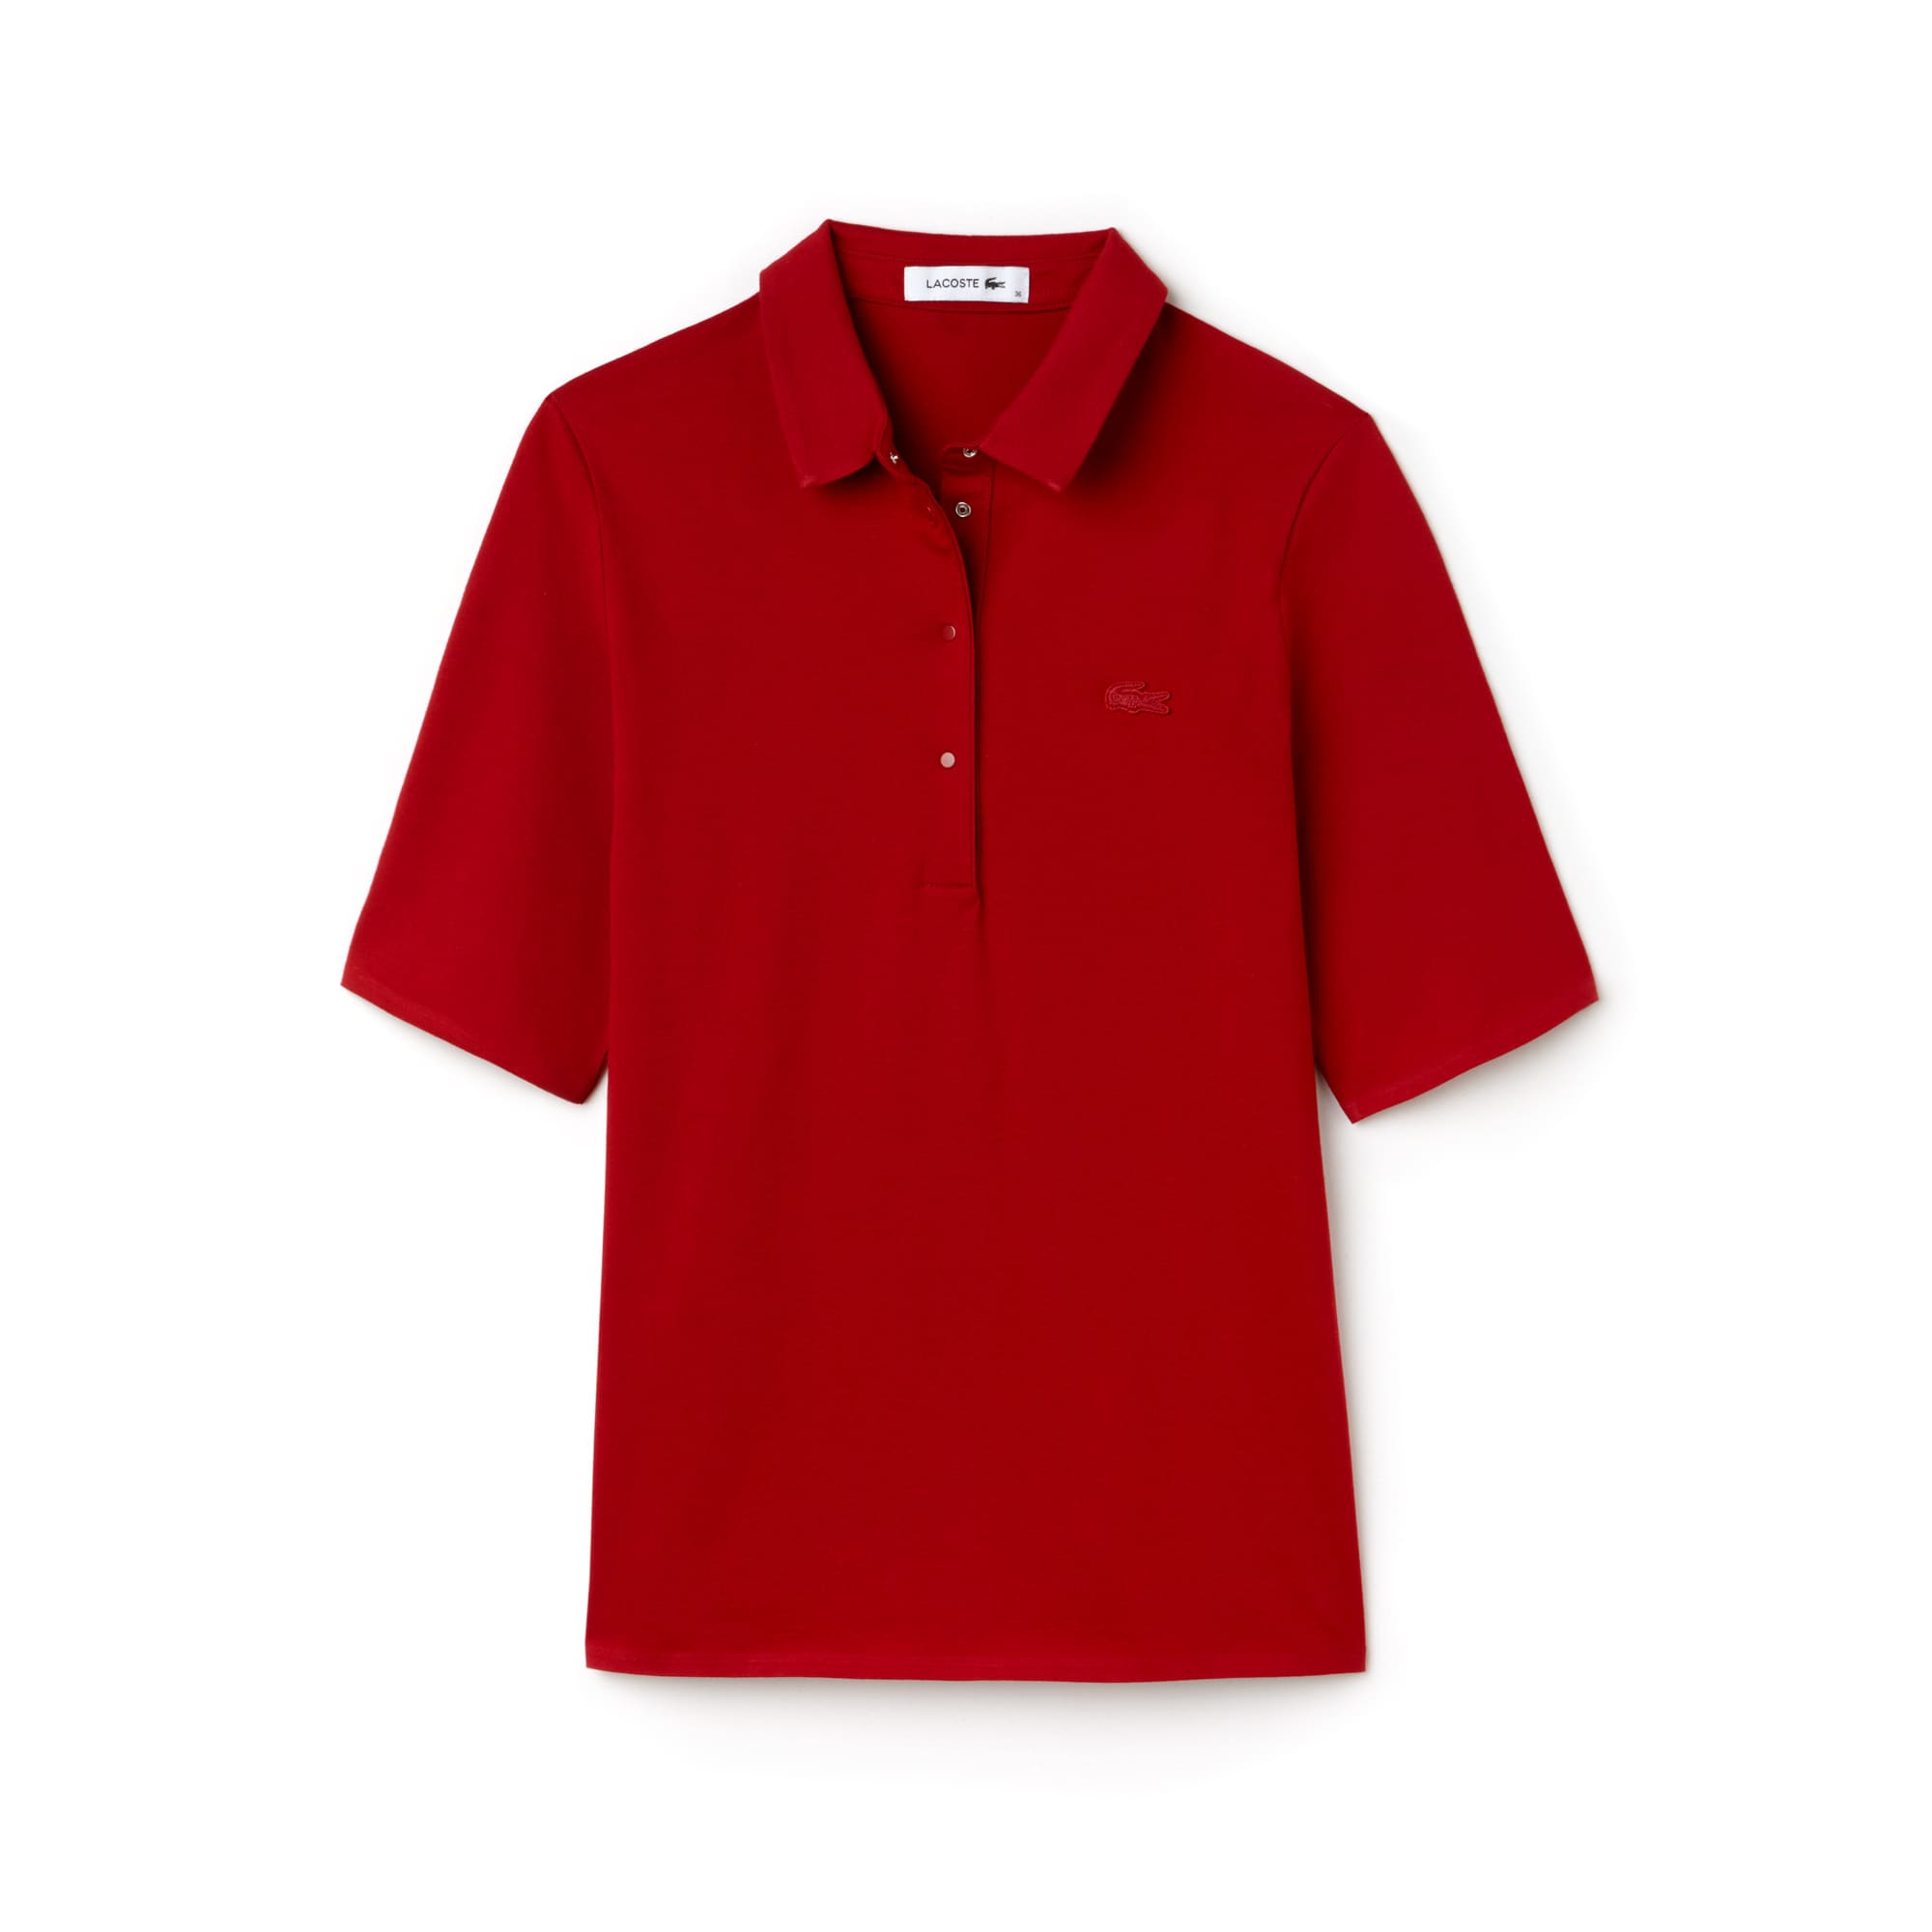 Women's Lacoste Pleated Back Cotton Jersey Polo